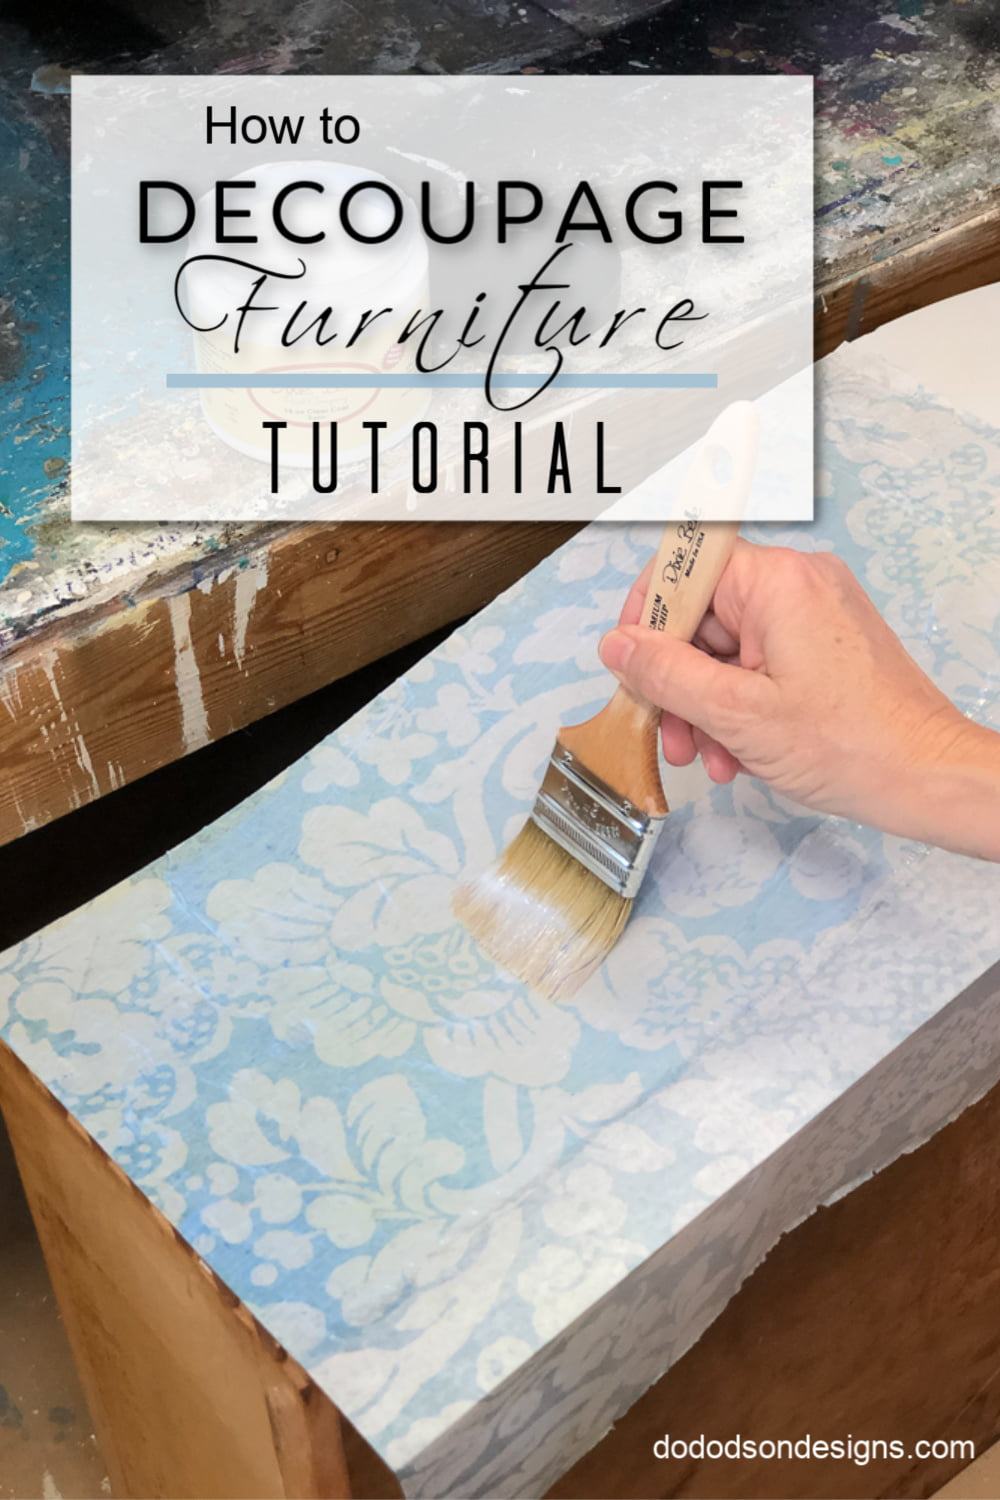 How To Decoupage Furniture | Tutorial